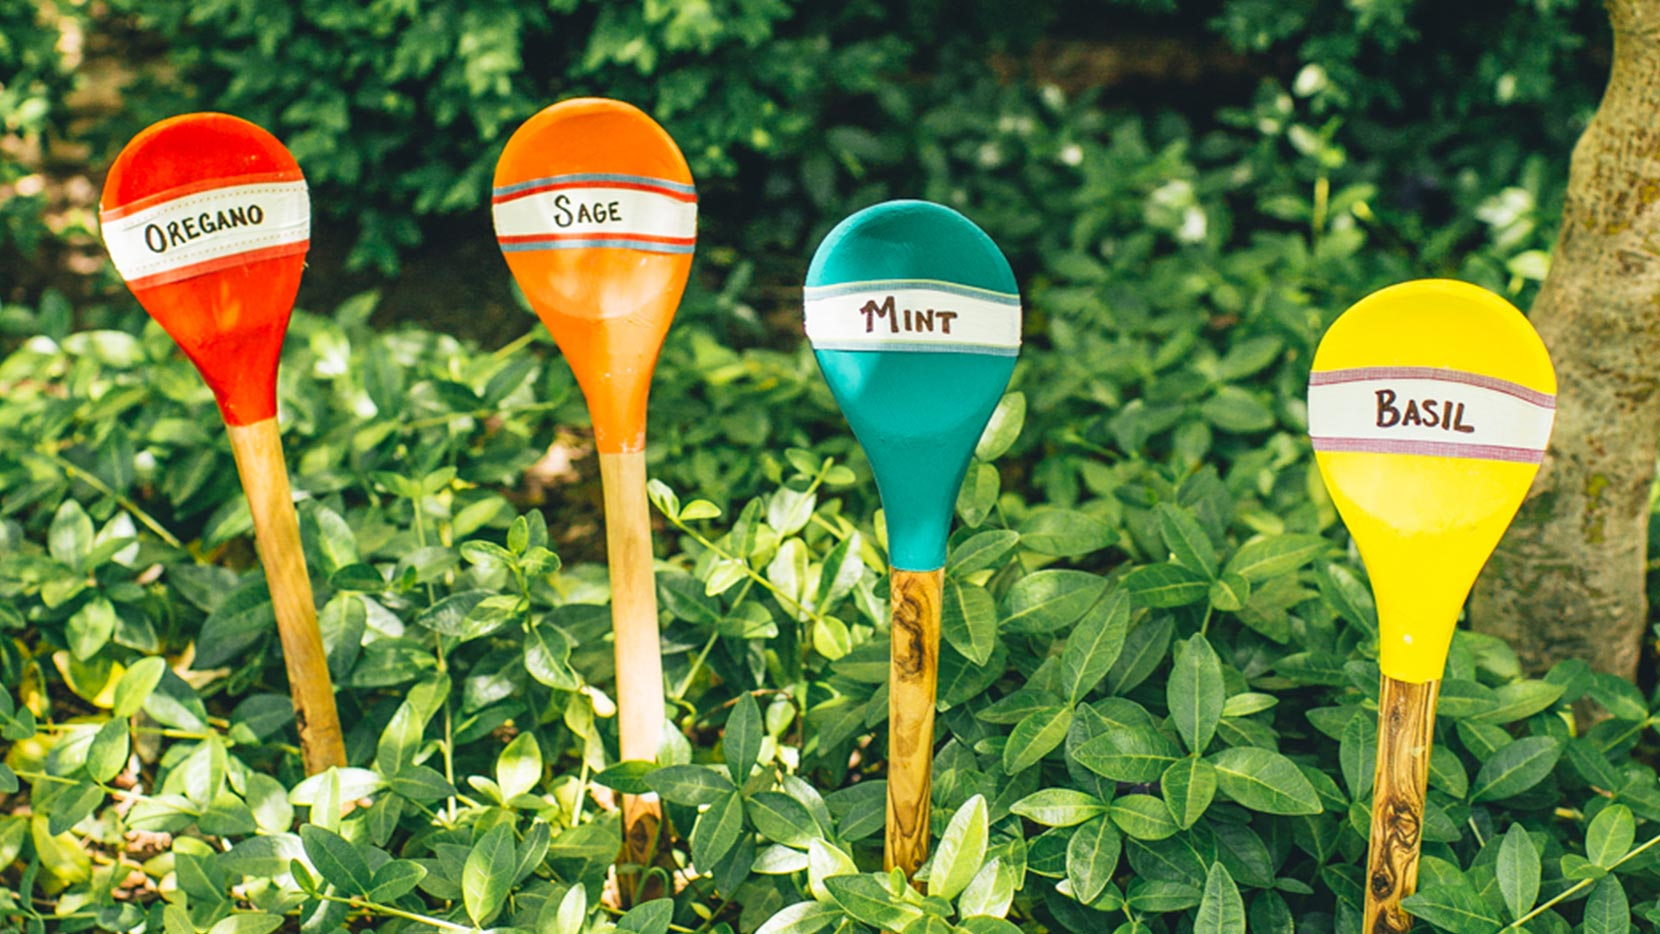 Place wooden spoon in garden next to its corresponding herb